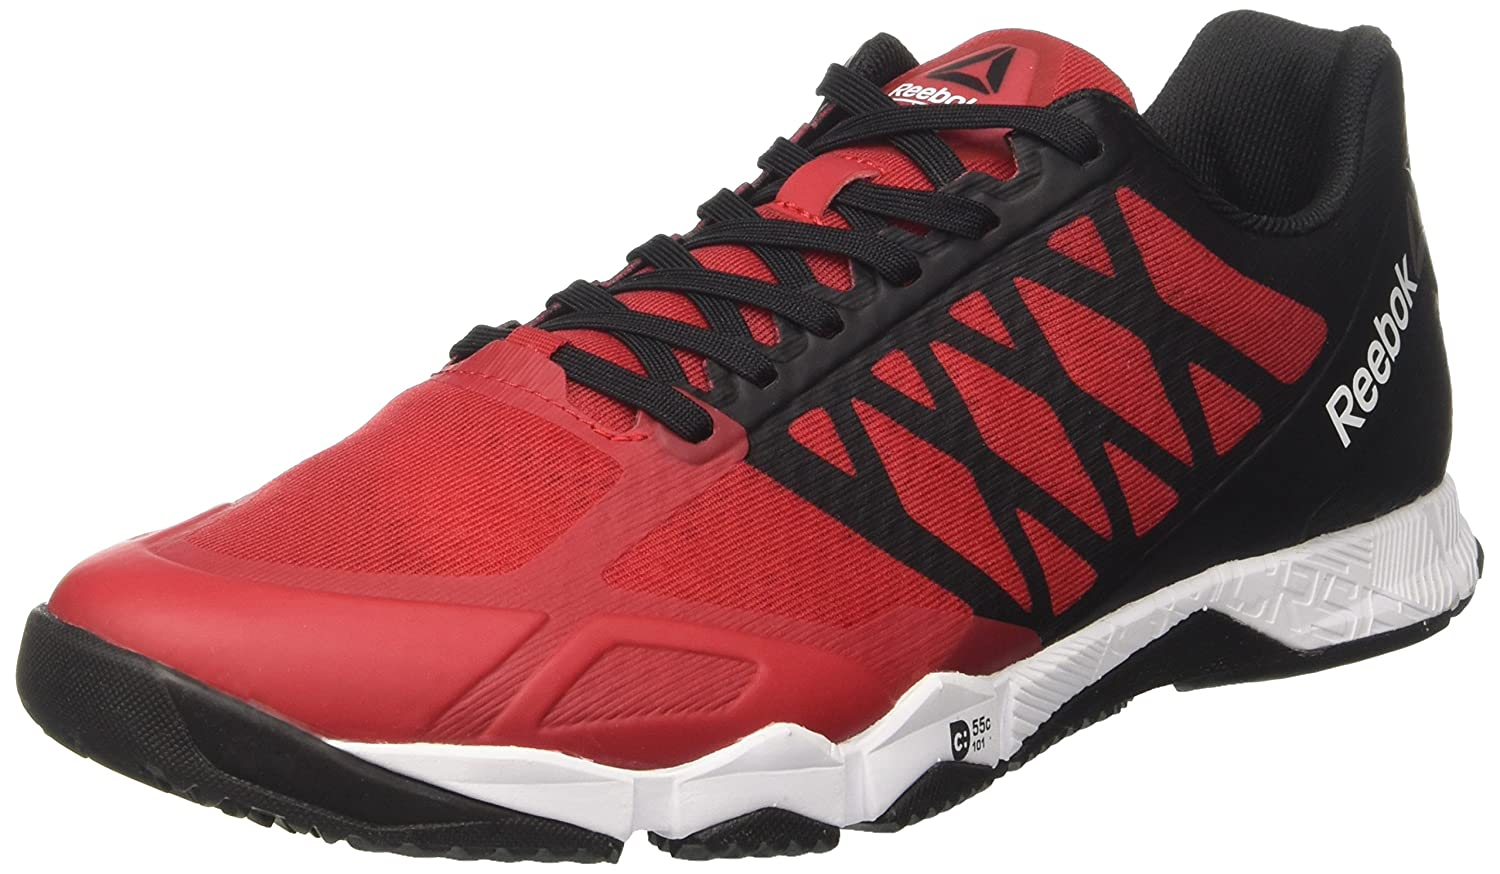 Reebok R Crossfit Speed TR, Zapatillas de Gimnasia para Hombre, Rojo (Excellent Red/Black / White/Pewter), 42 EU: Amazon.es: Zapatos y complementos